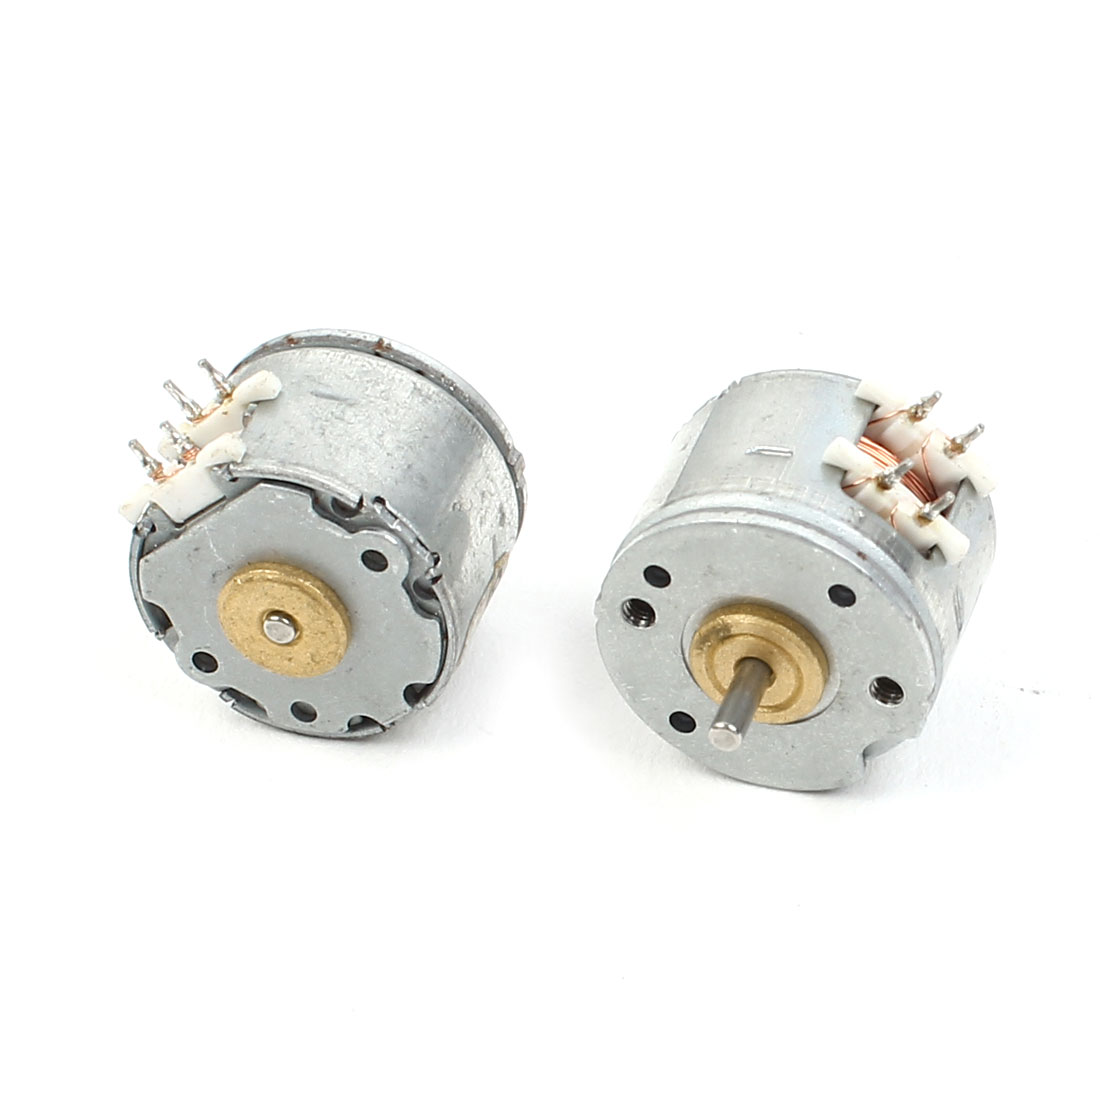 2pcs DC5V 5mm Shaft Length 15mm Dia Two Phase Four Wire Stepper Motor